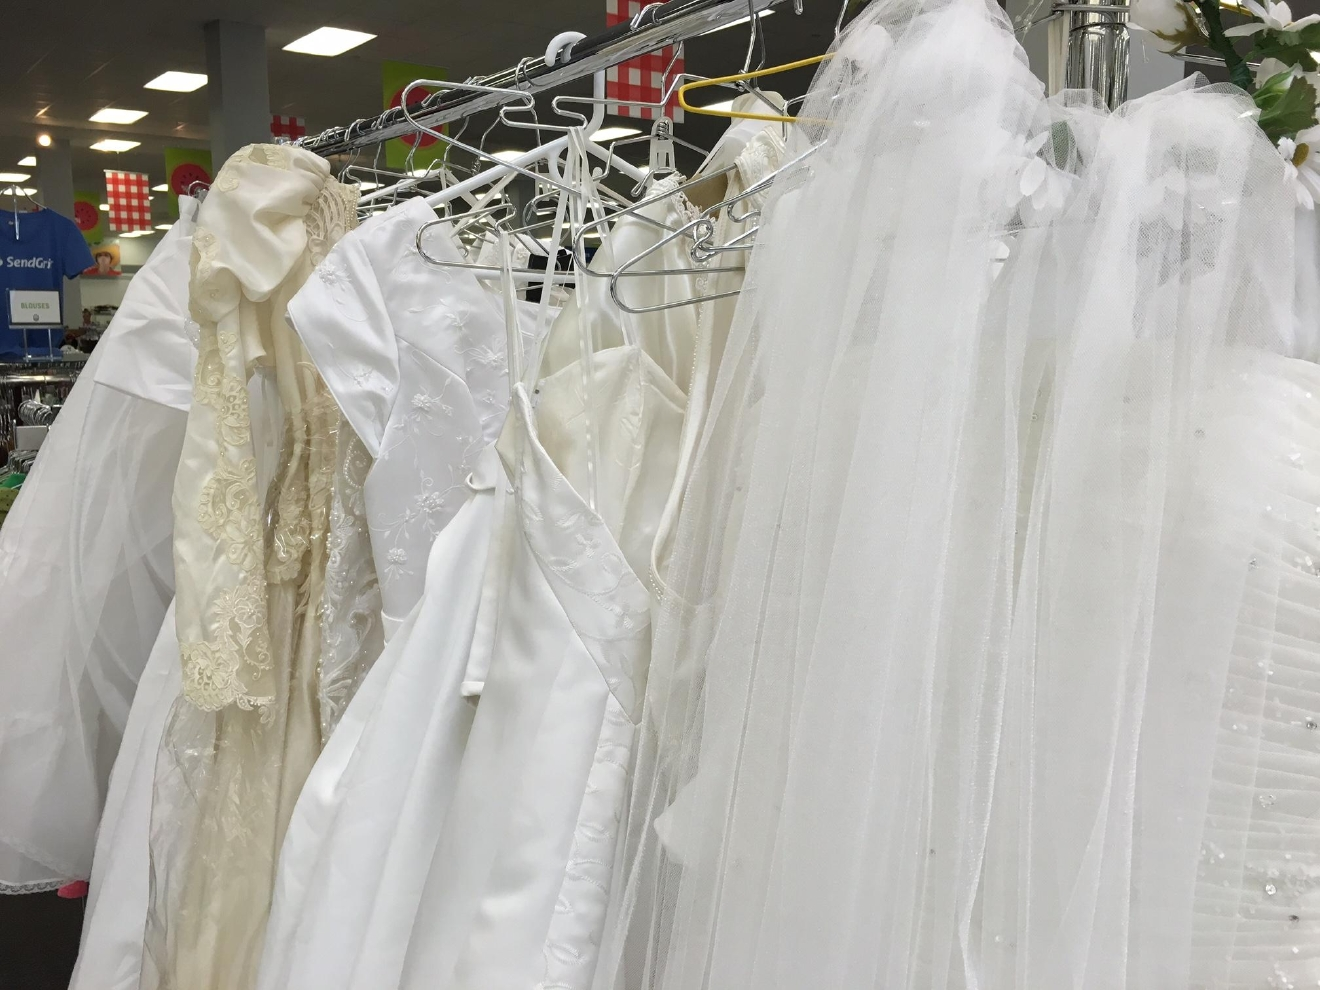 Anonymous Donor Gives 1 000 New Wedding Dresses To Provo Deseret Industries